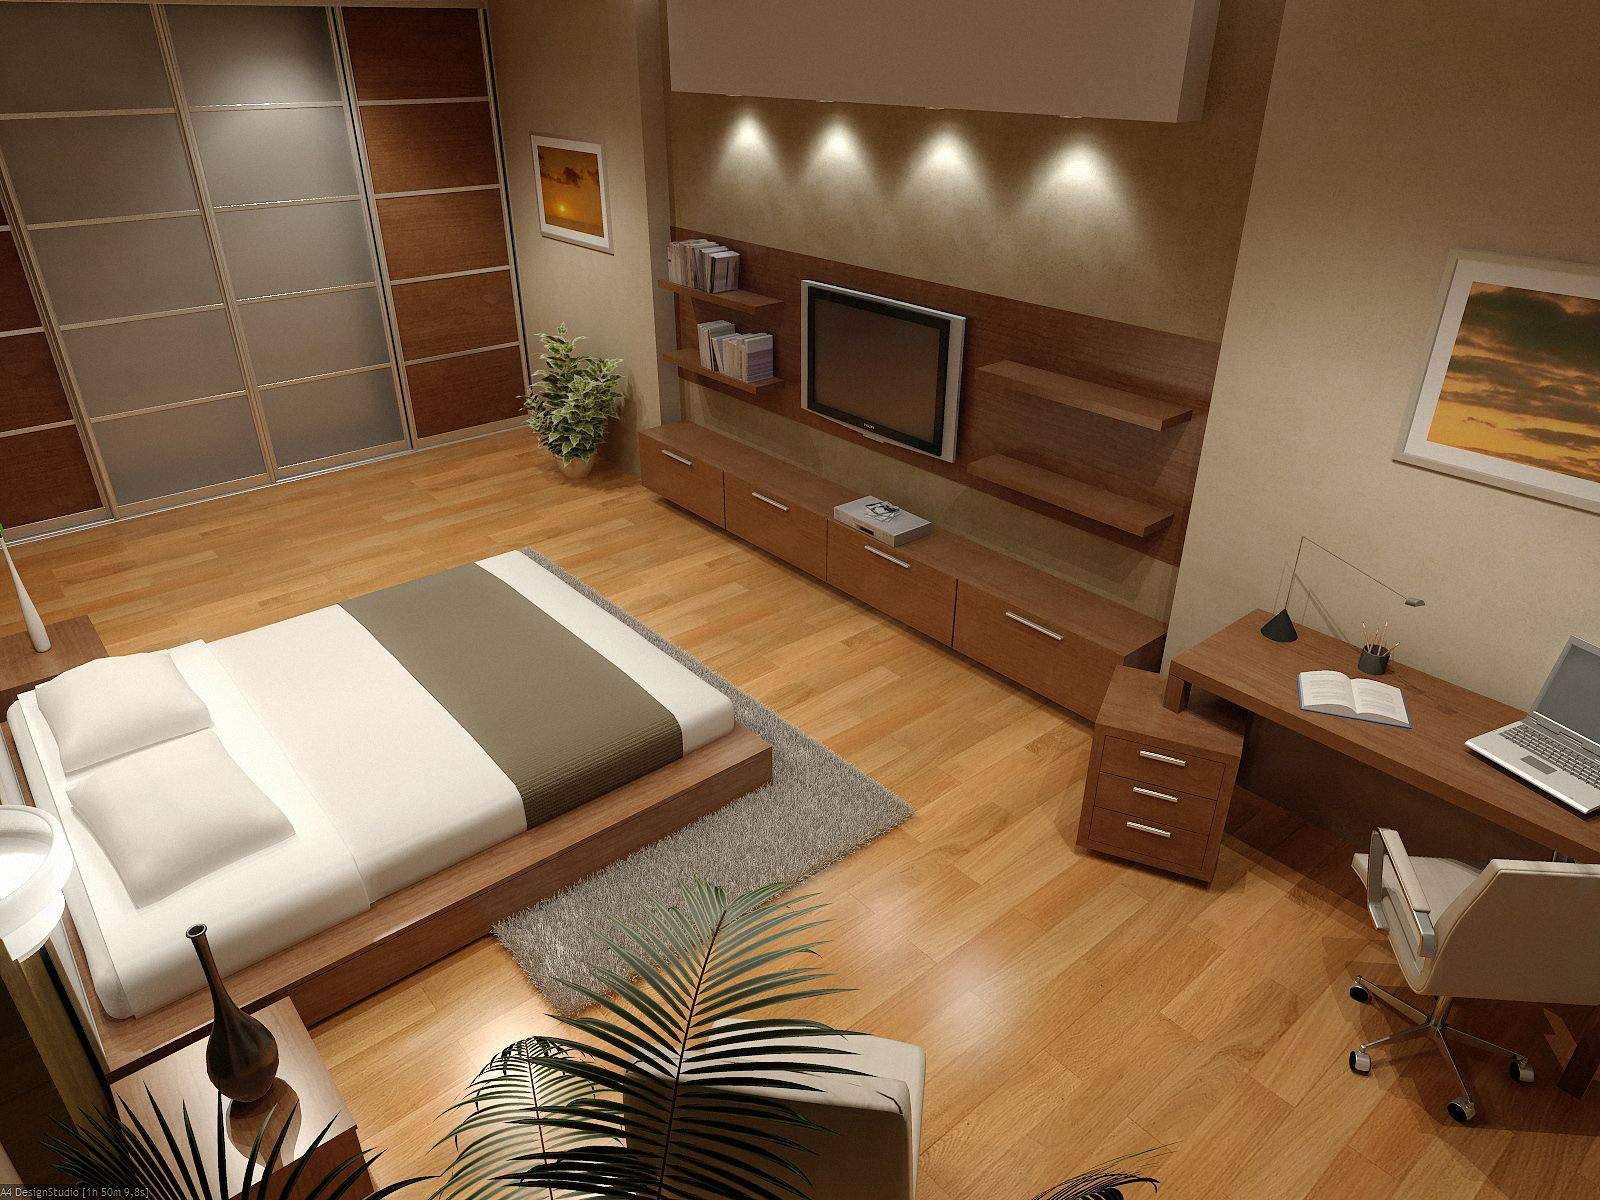 Interior, Bedroom With Wooden Floor And Wooden Thing Other For Modern House  Design: Unique Kind Of The Flooring Designs For House Living And Apartment